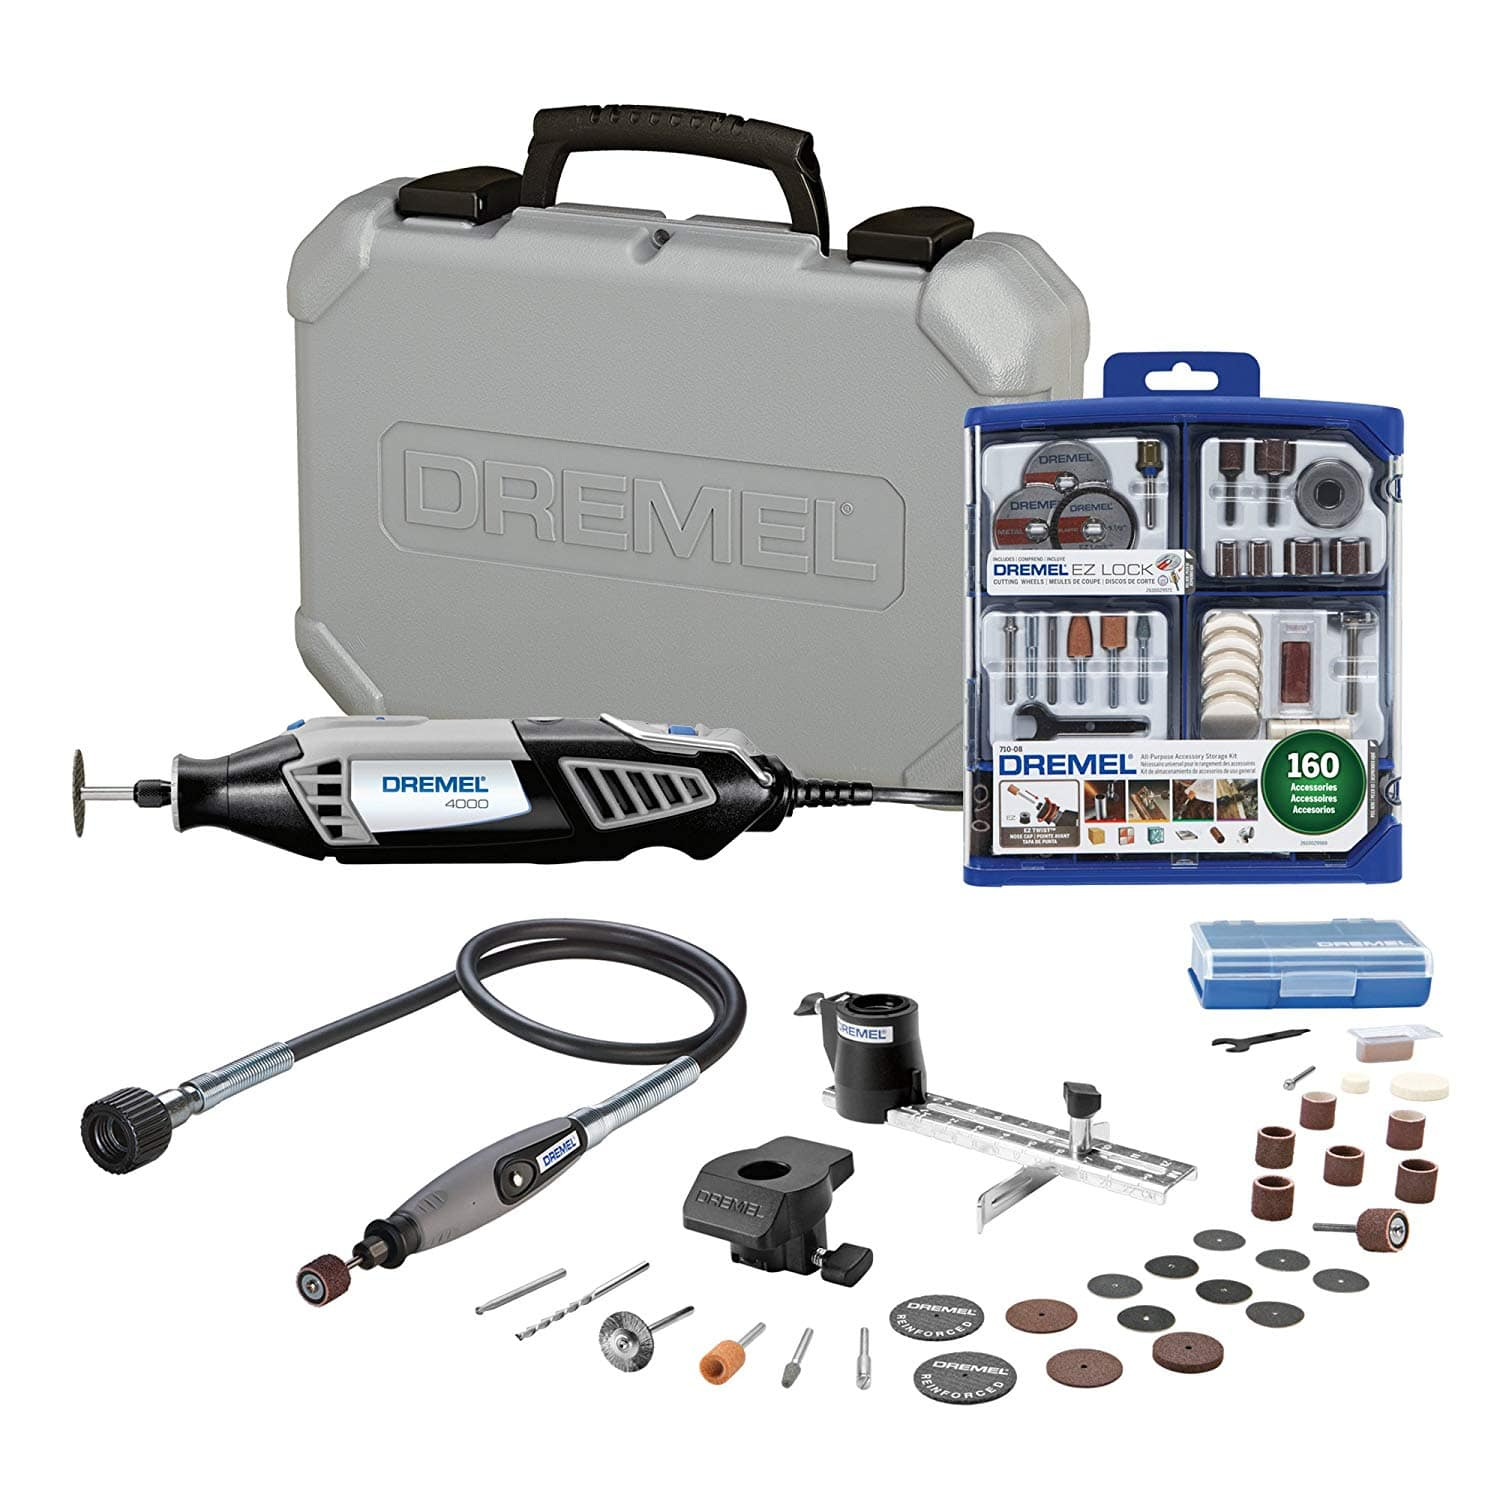 prime members dremel 4000 2 30 rotary tool w 160 pc acc kit flex shaft attachment page 3. Black Bedroom Furniture Sets. Home Design Ideas